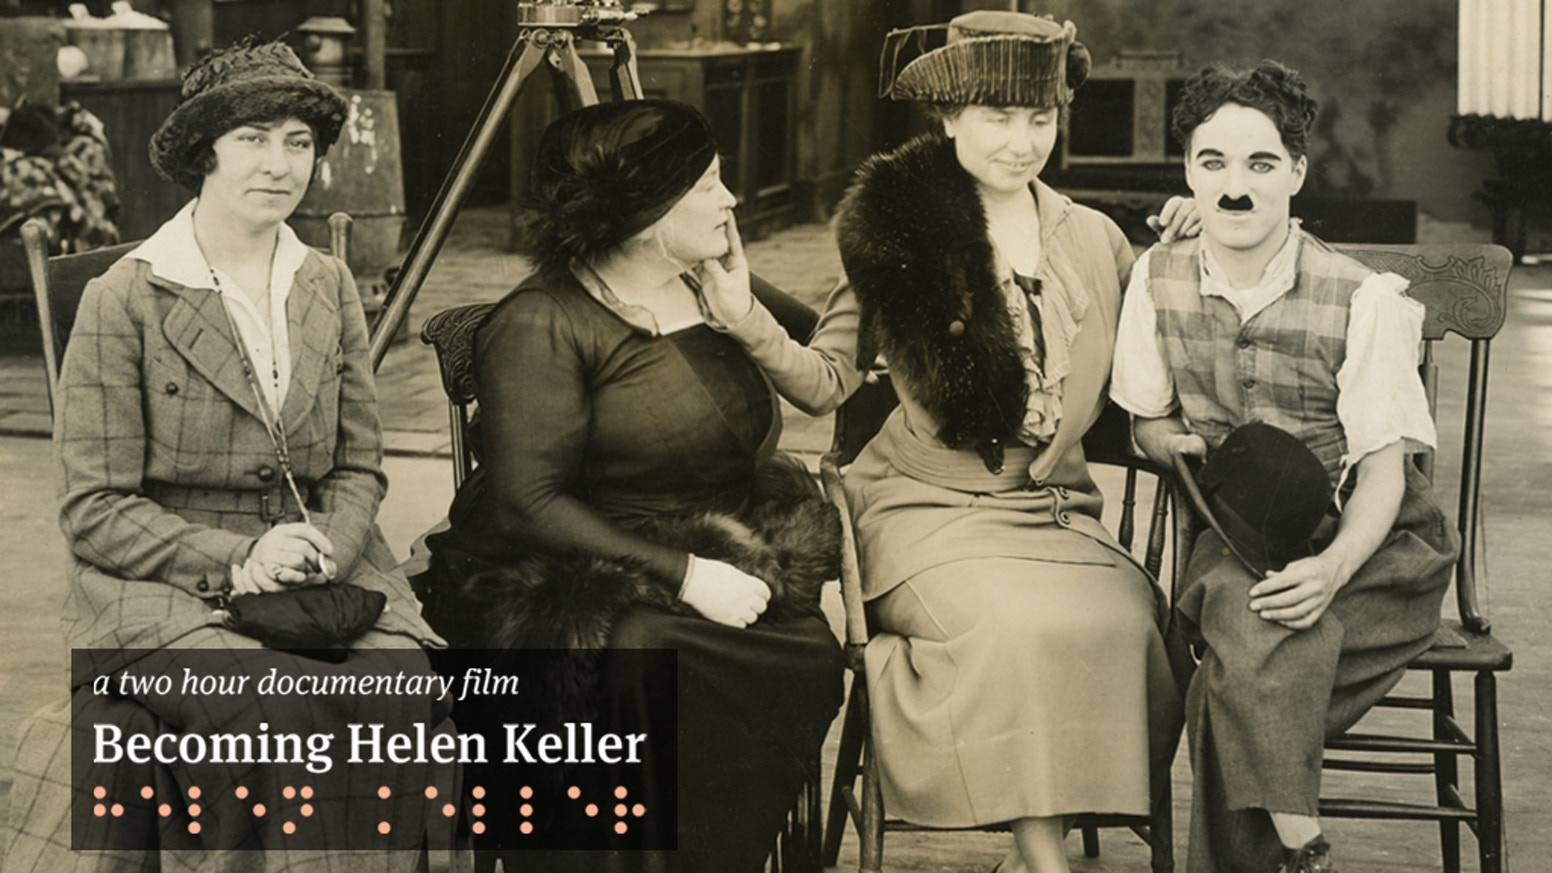 Becoming Helen Keller, 2-hour documentary film in progress